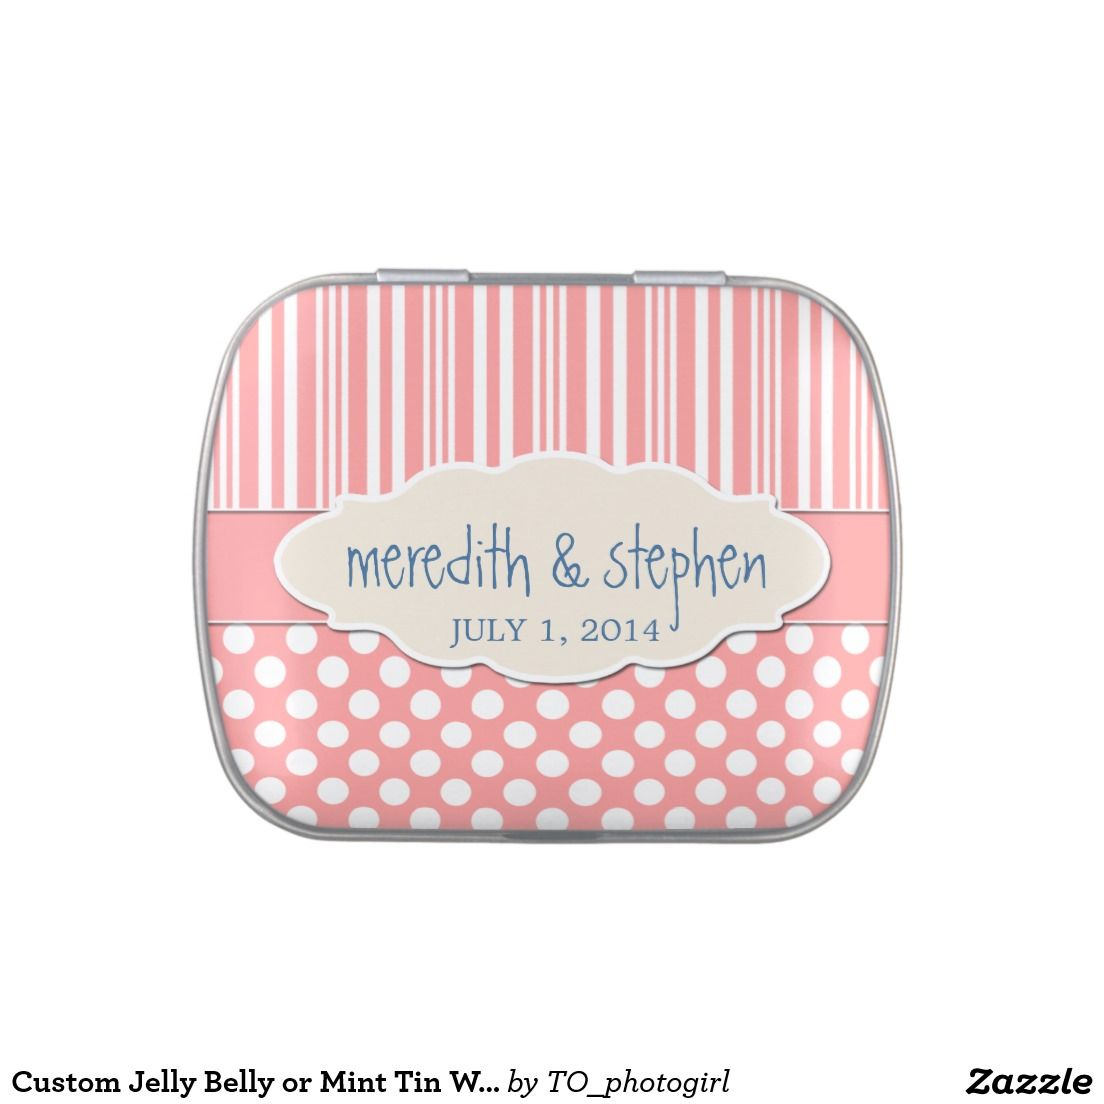 Custom Jelly Belly or Mint Tin Wedding Favor Candy Tins | Mint tins ...